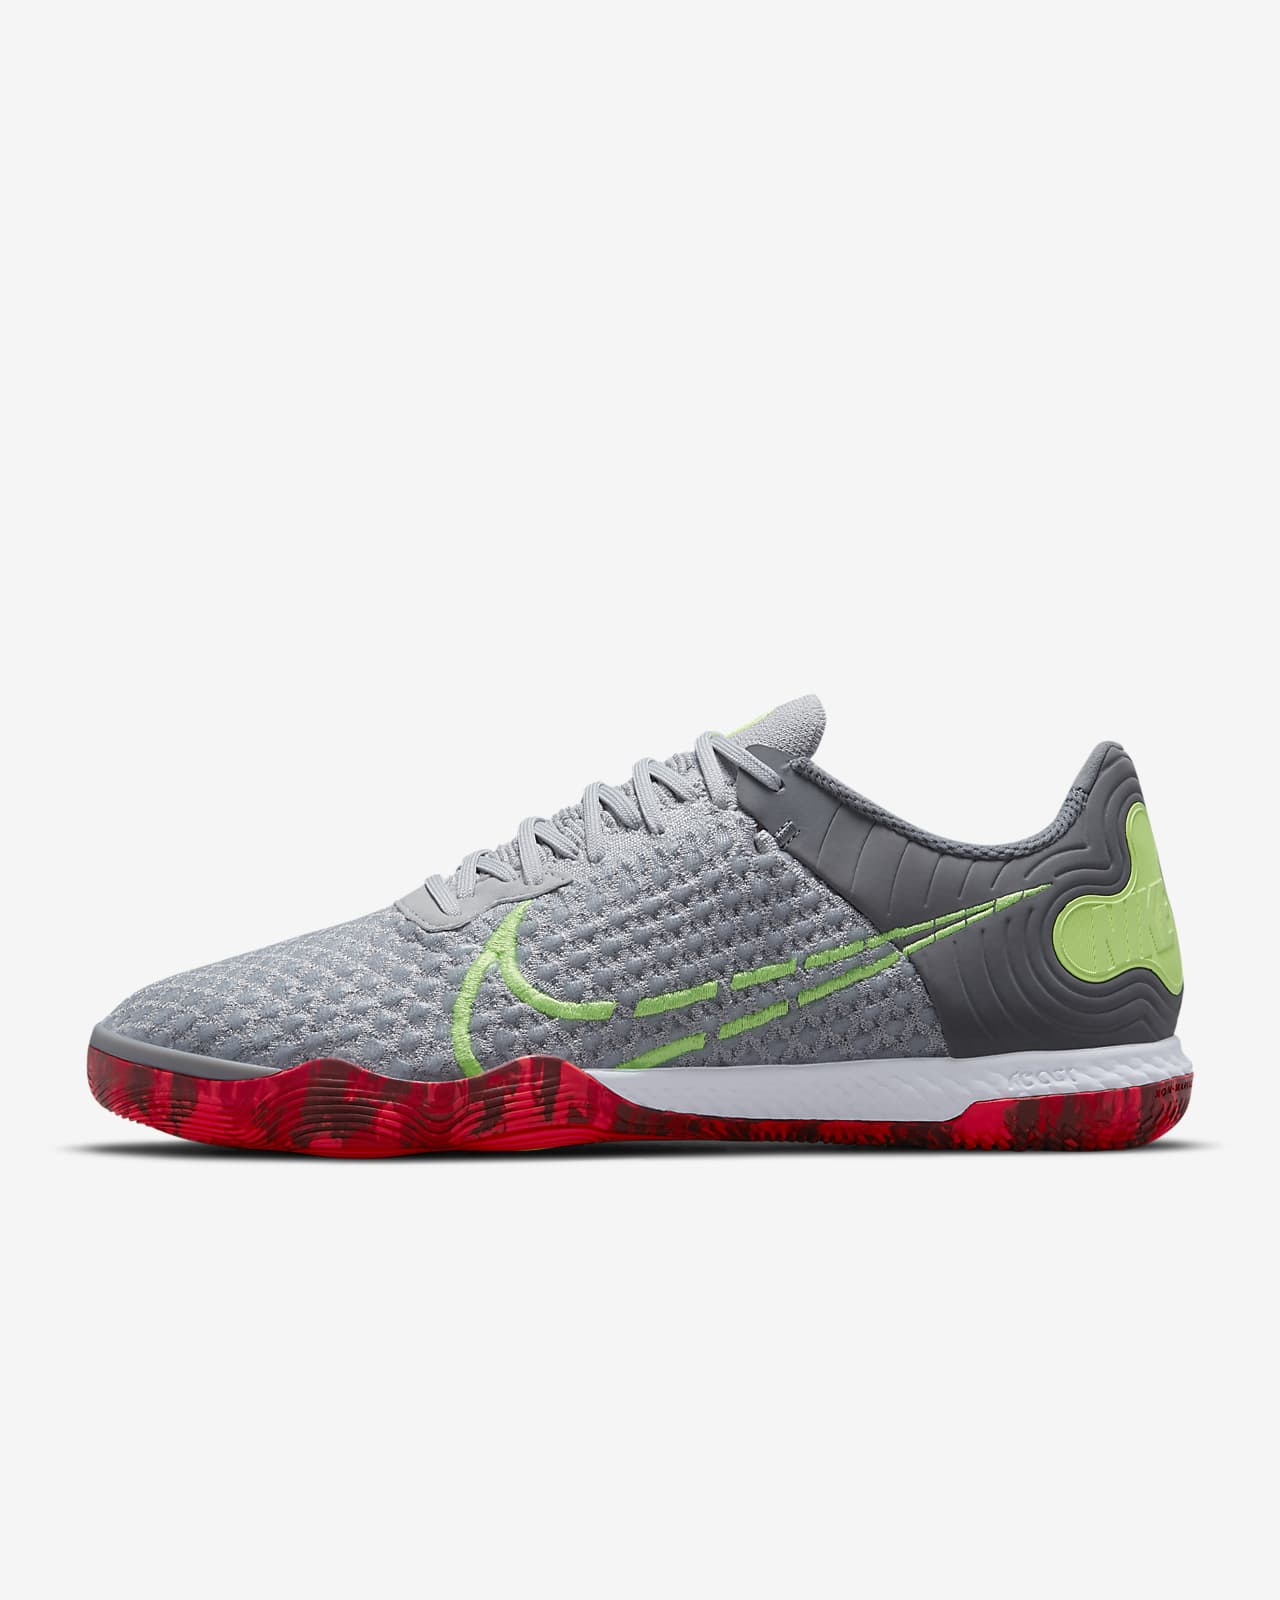 Nike React Gato Indoor/Court Soccer Shoes